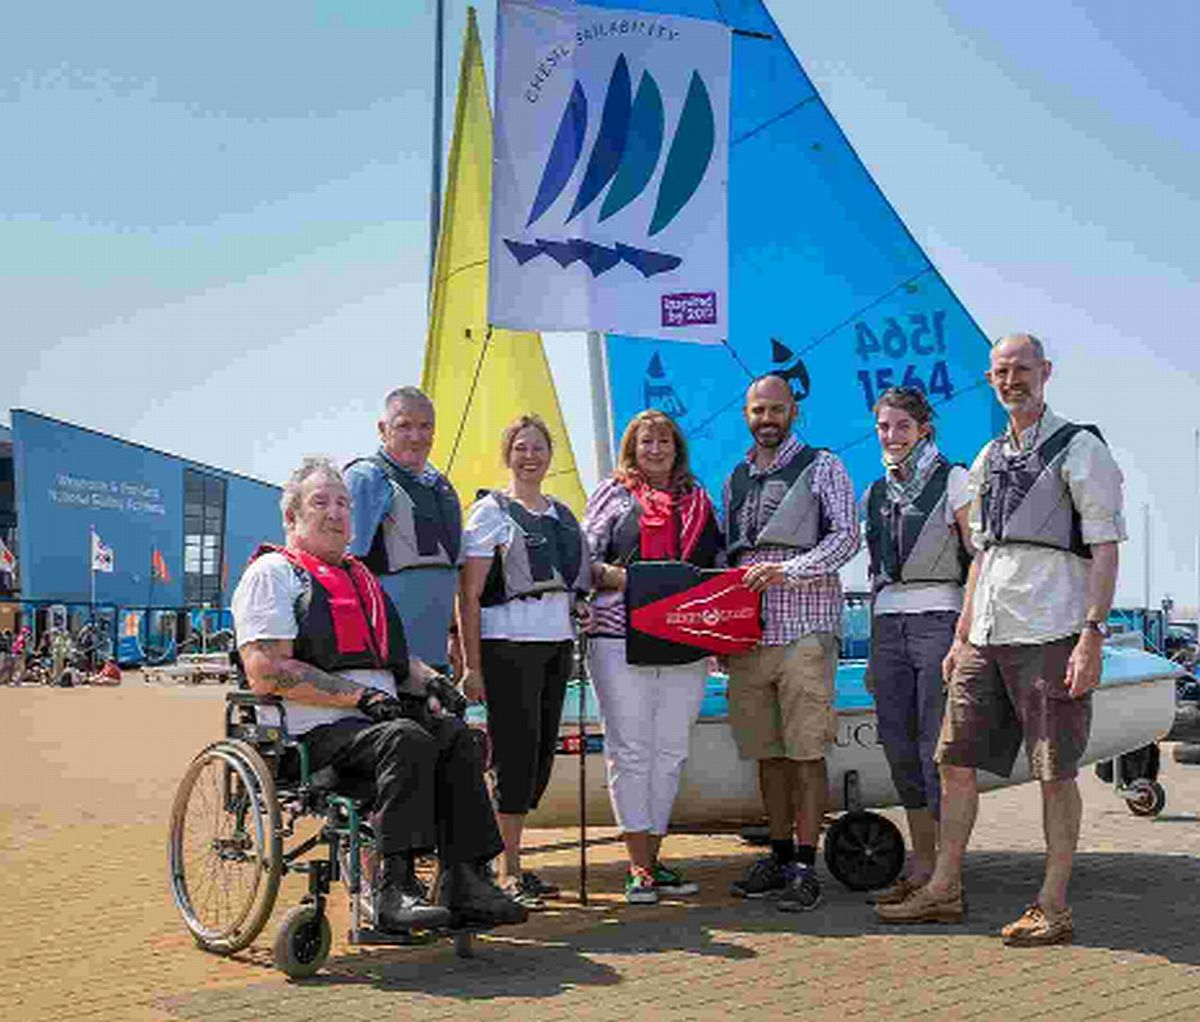 A CELEBRATION: Sailors and volunteer members of the Chesil Sailability group